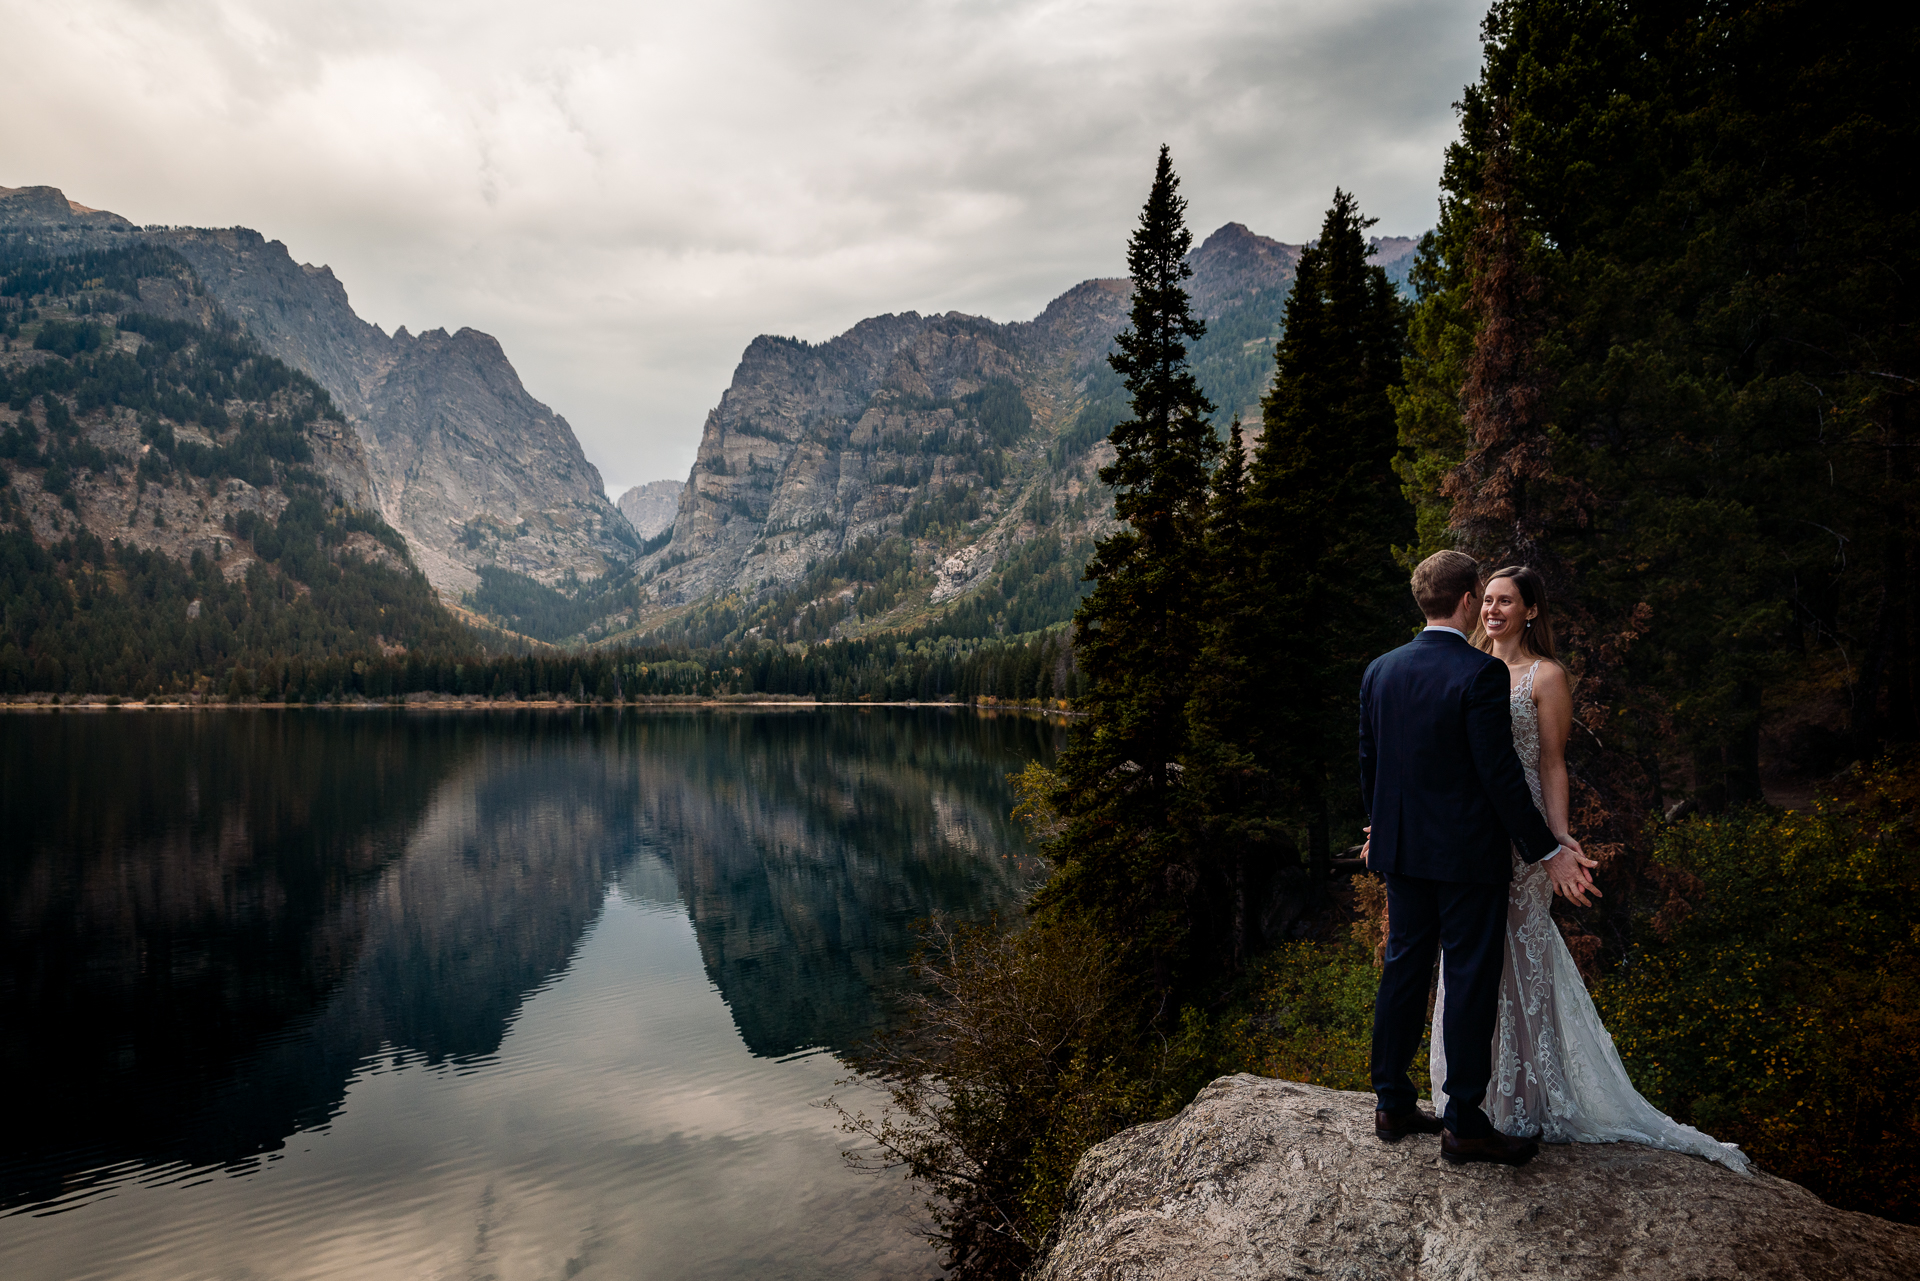 Grand Teton Elopement, WY Wedding Photography | Moments after the couple finished their ceremony and had their first kiss following their self-uniting ceremony